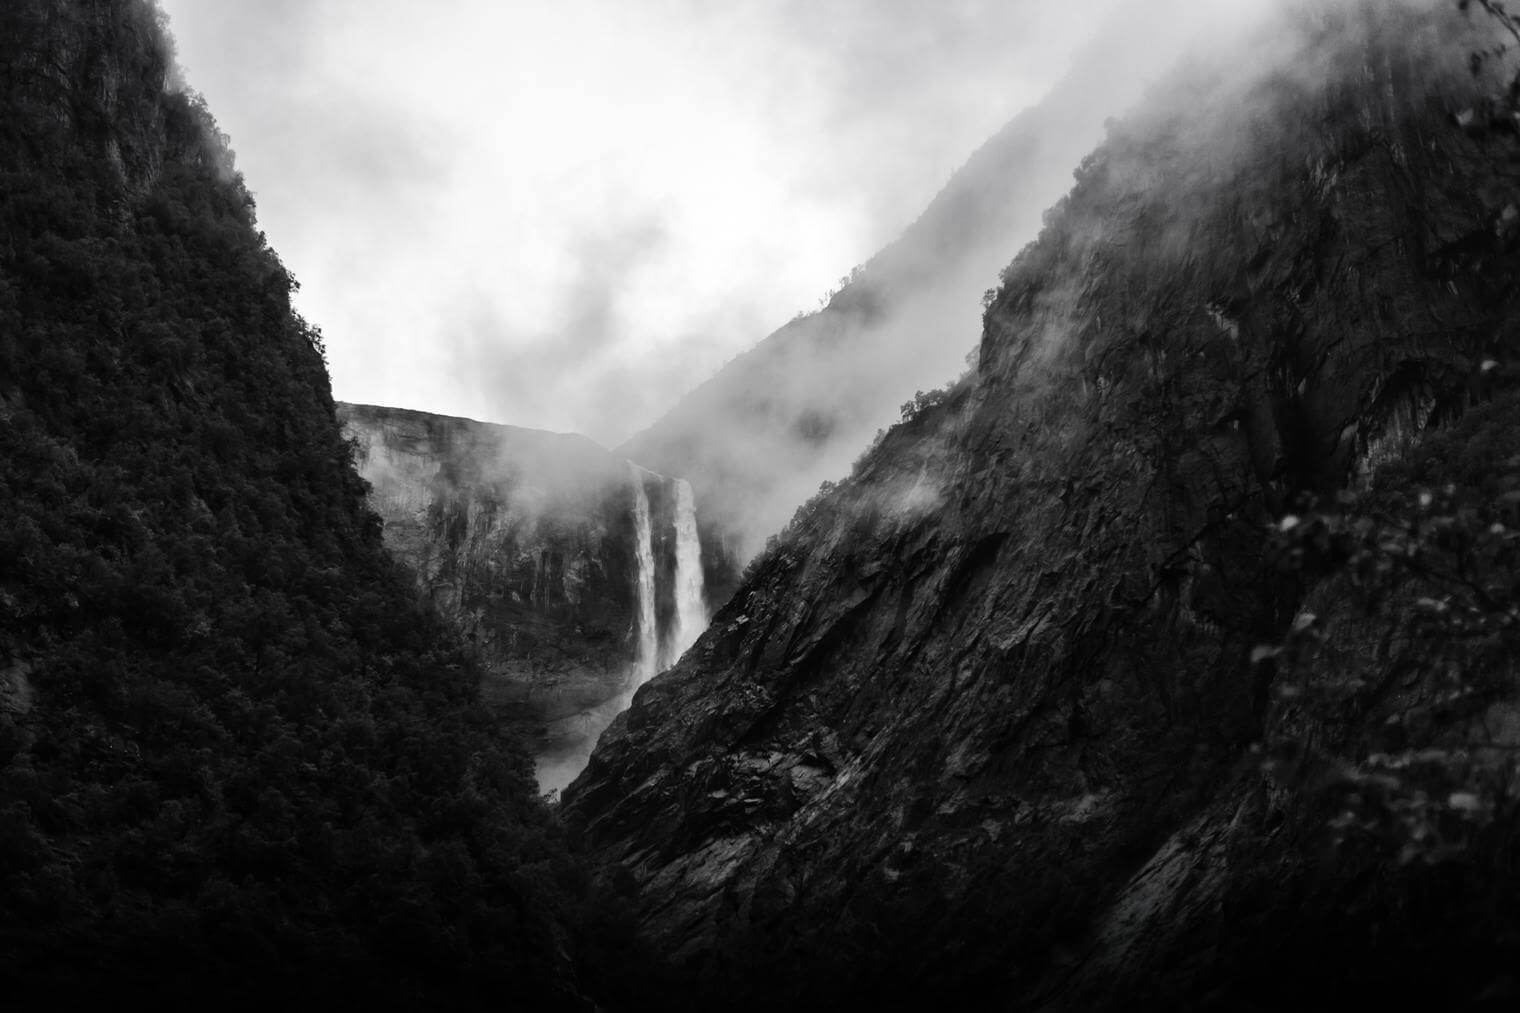 Landscape with Waterfall in Dramatic Black and White